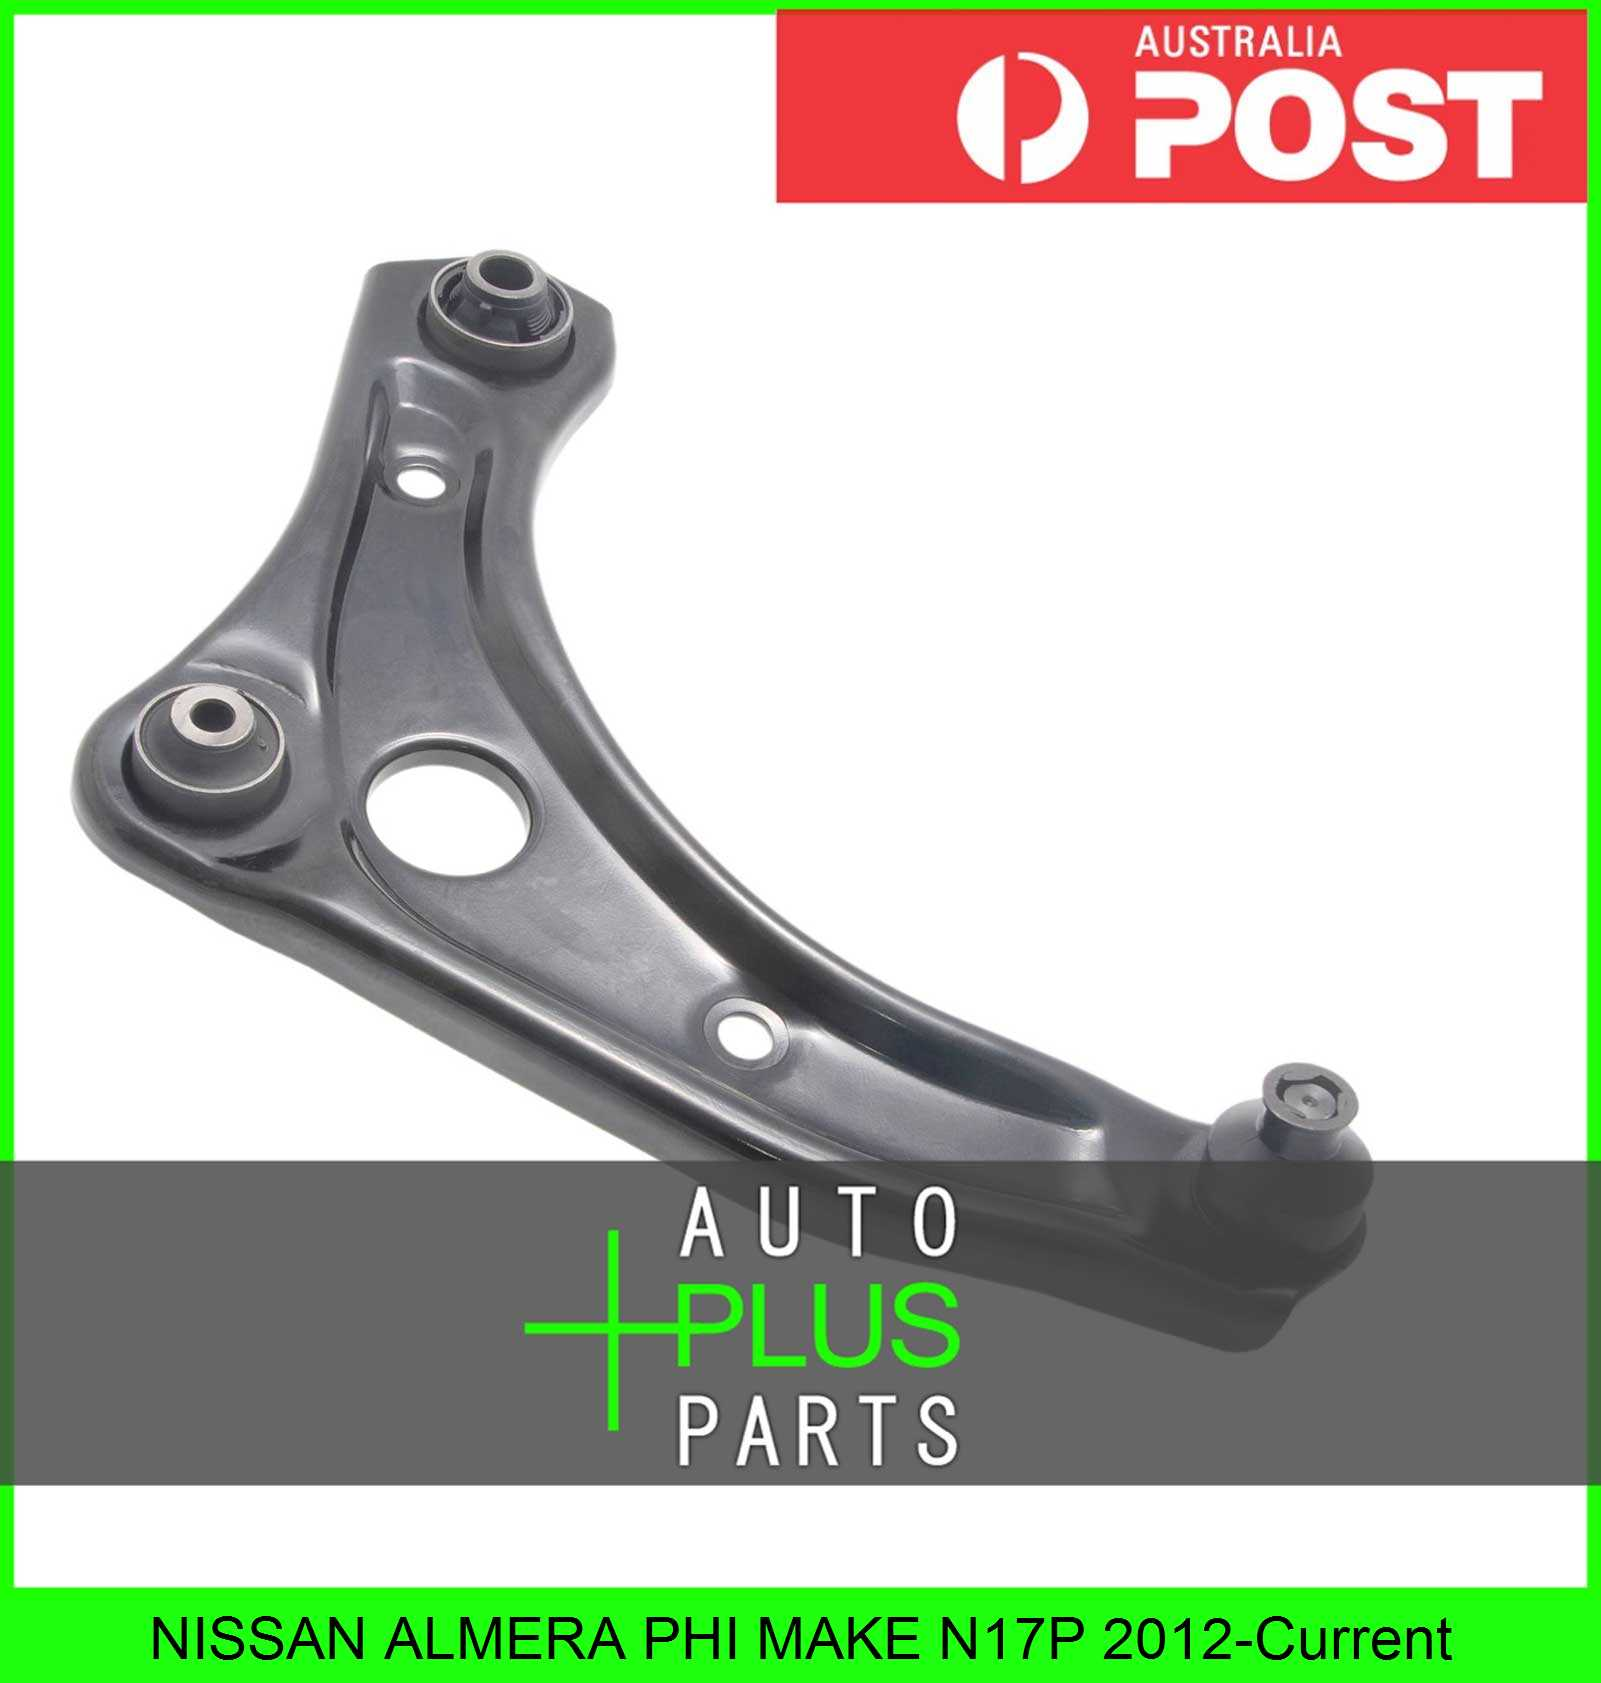 FITS NISSAN CUBE 2009/> FRONT SUSPENSION WISHBONE CONTROL ARM BALLJOINT